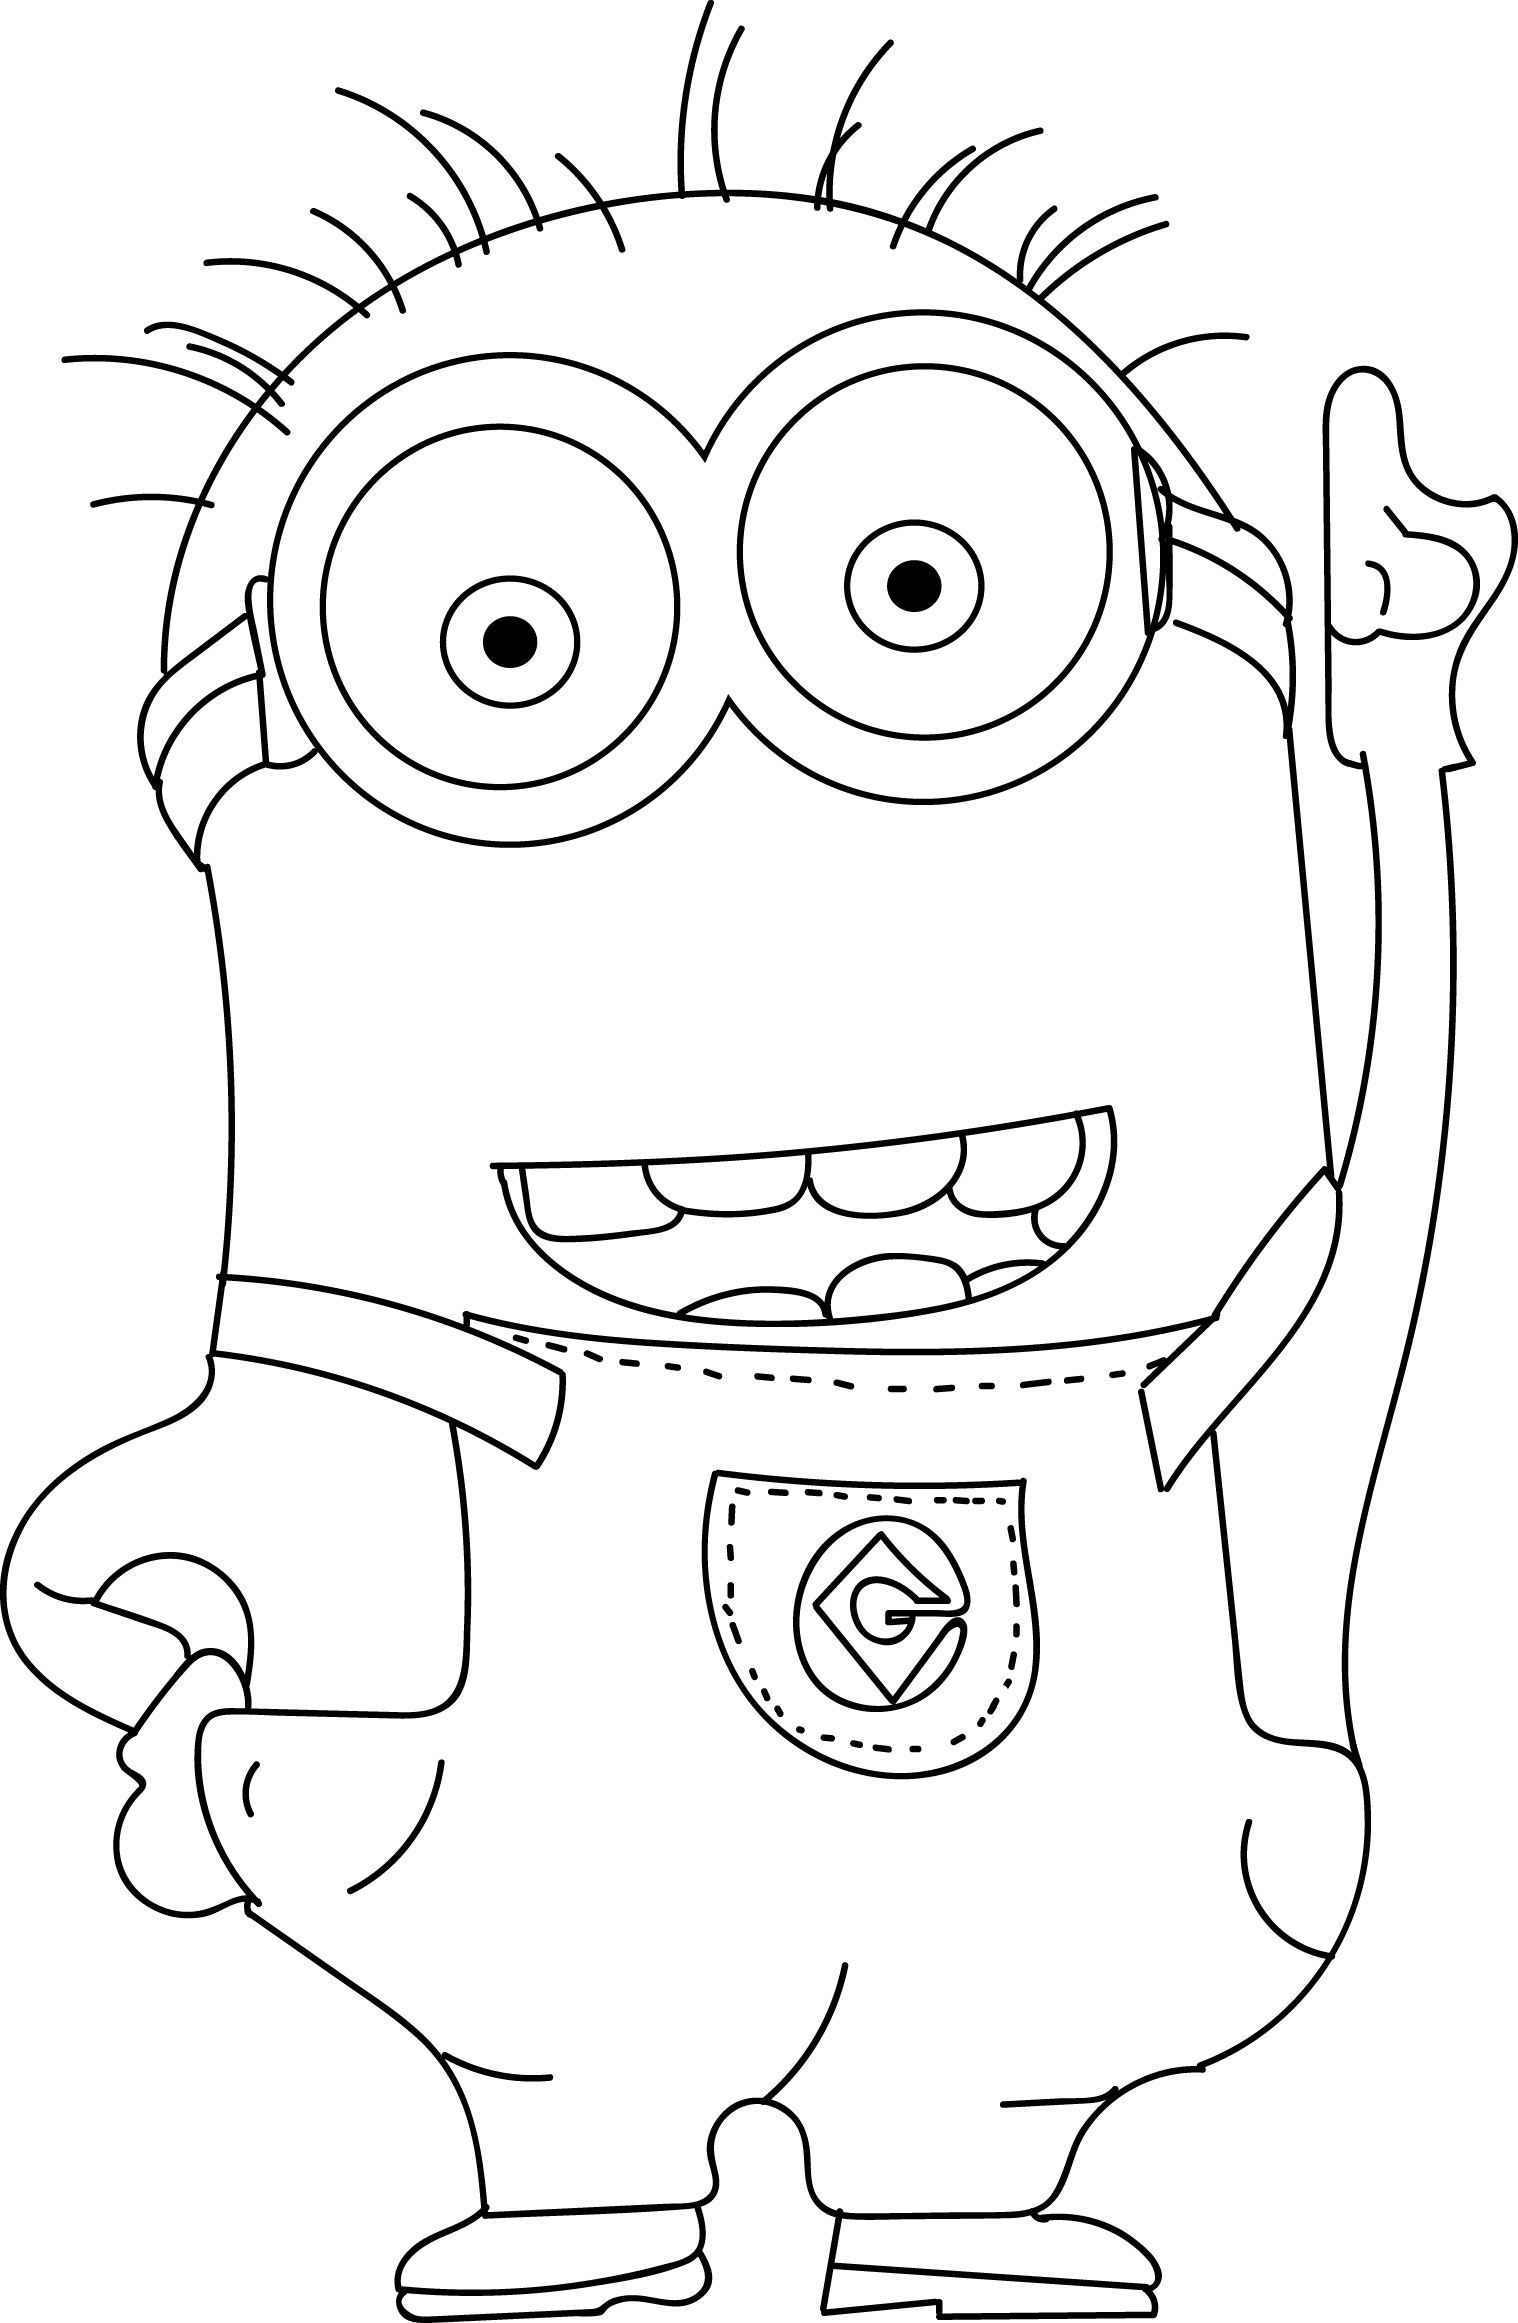 printable minion pictures minion drawing free download on clipartmag pictures minion printable